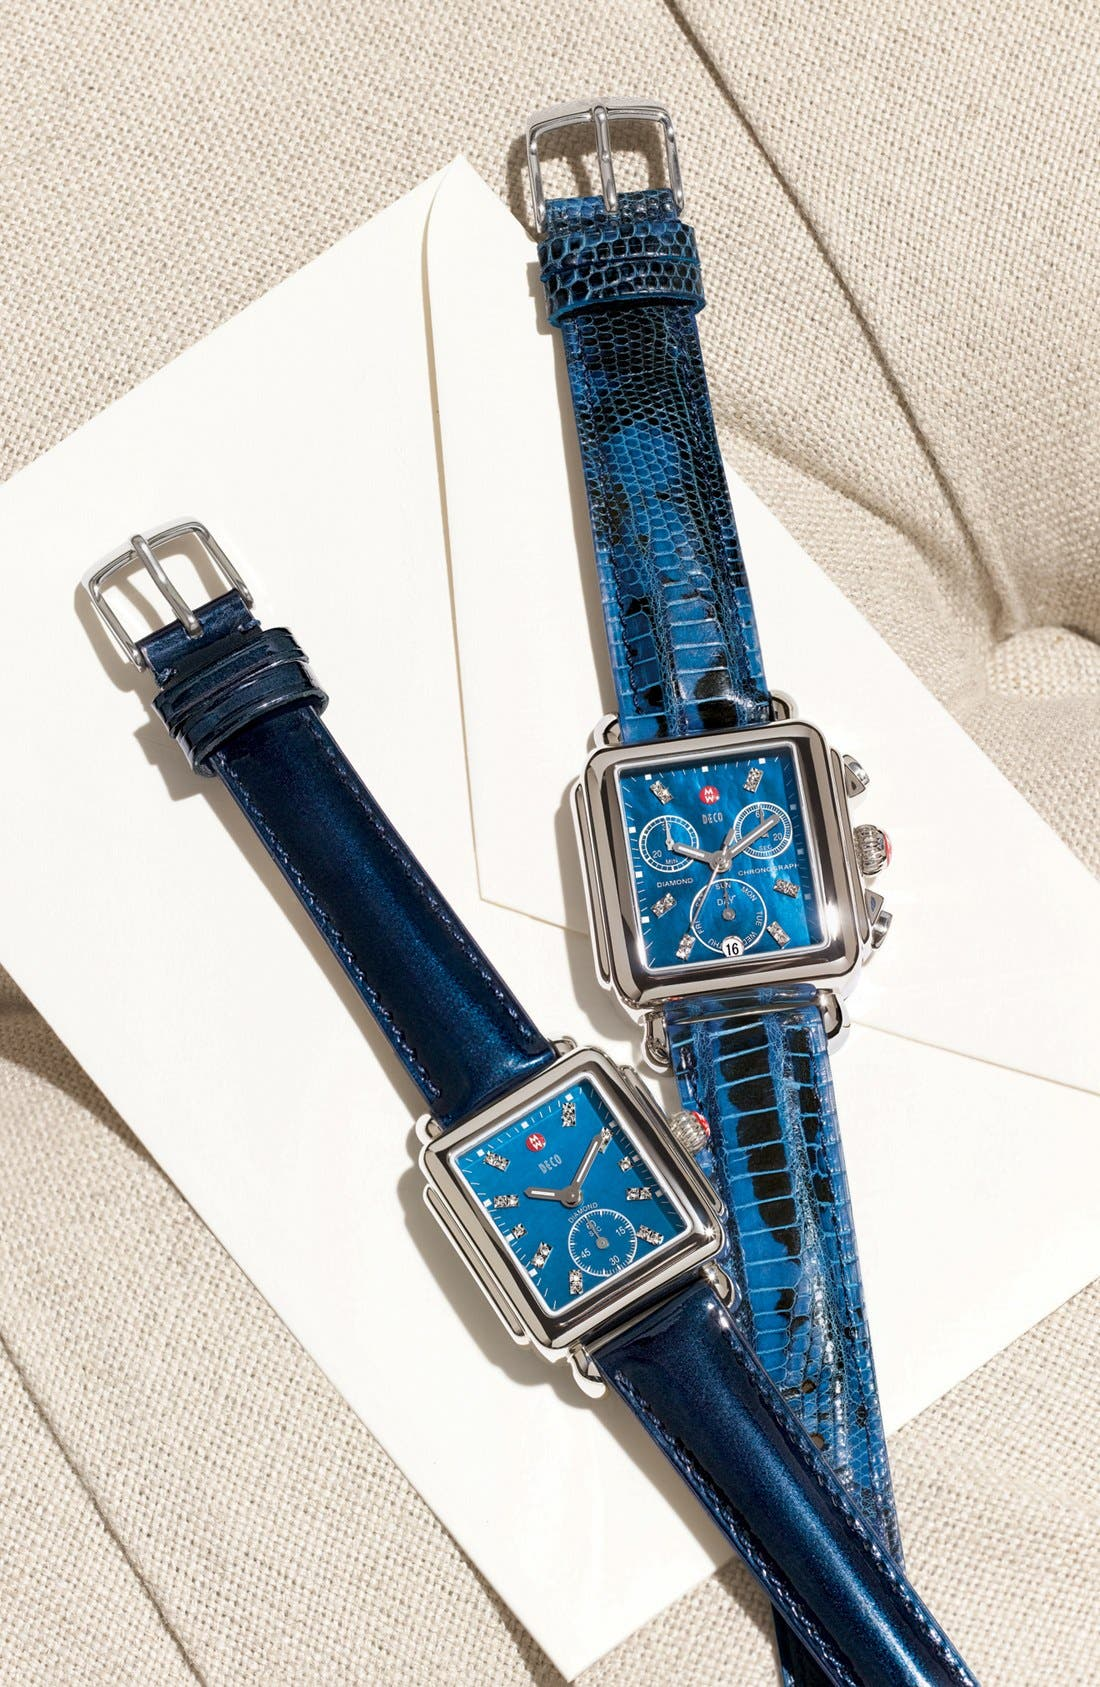 Main Image - MICHELE 'Deco 16' Diamond Dial Watch Case & 16mm Navy Patent Leather Strap